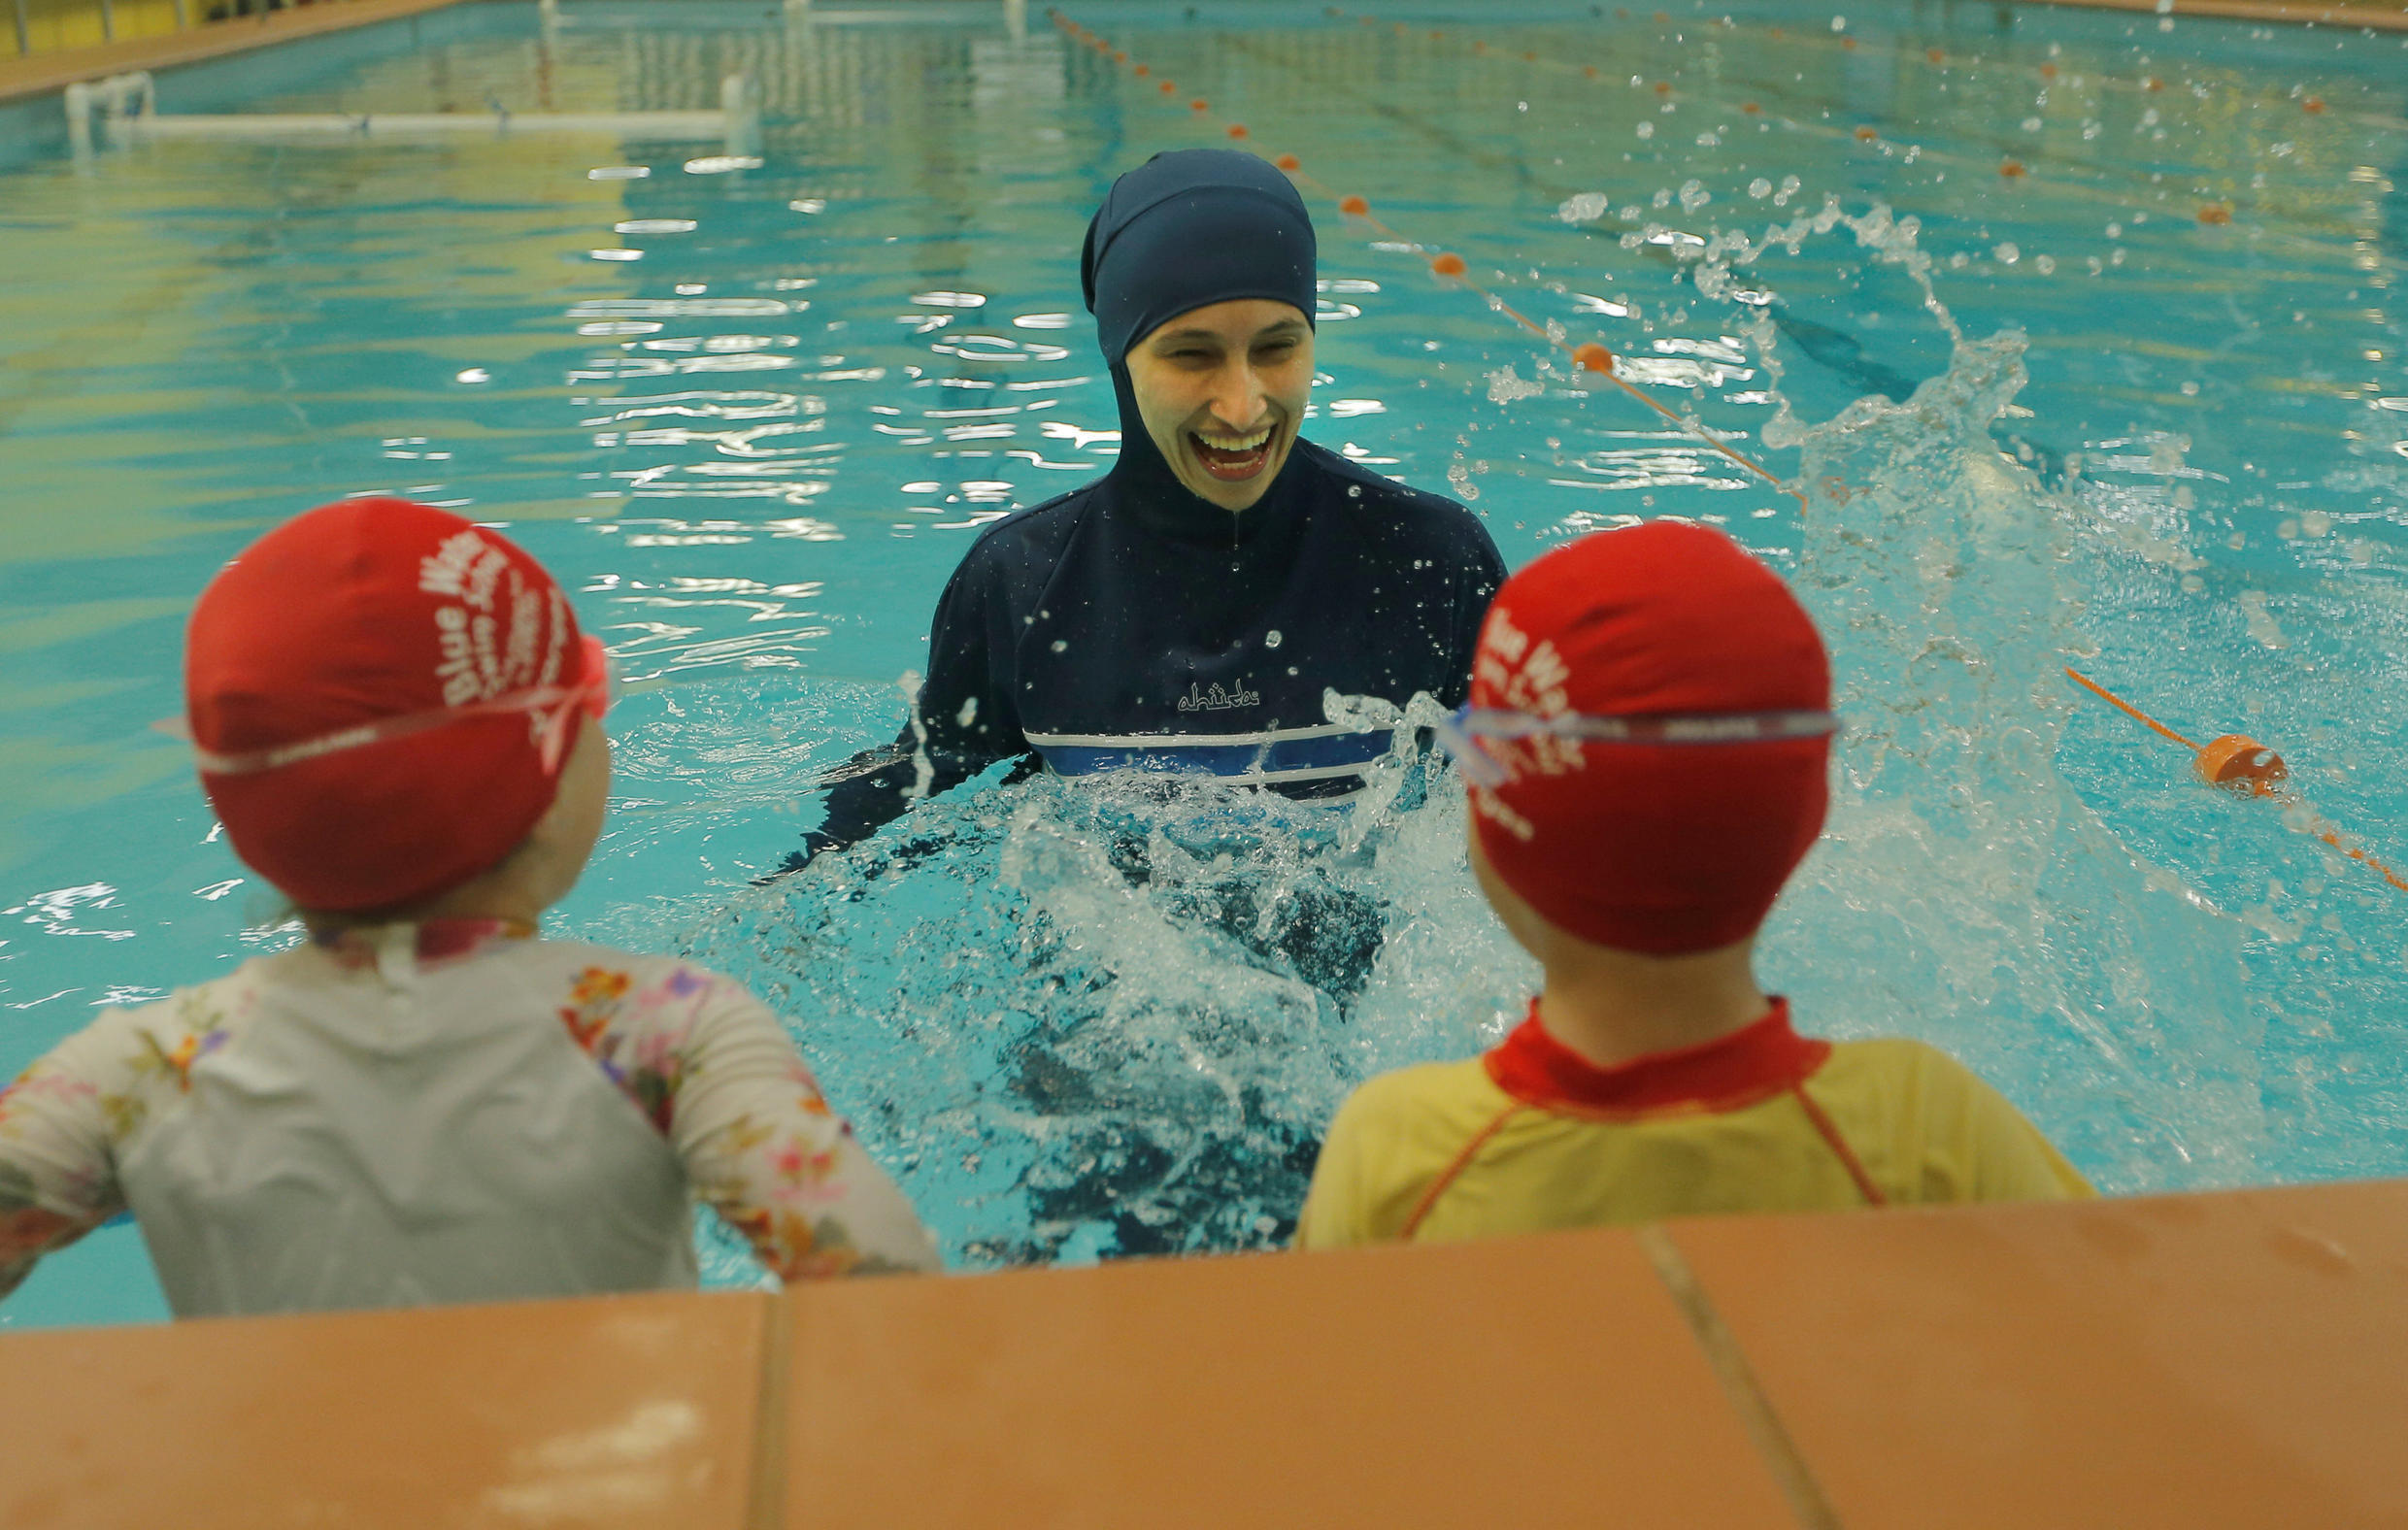 Australian muslim swimming instructor Fadila Chafic wears a burkini during a swimming lesson with her children Taaleen (L) and Ibrahim in Sydney